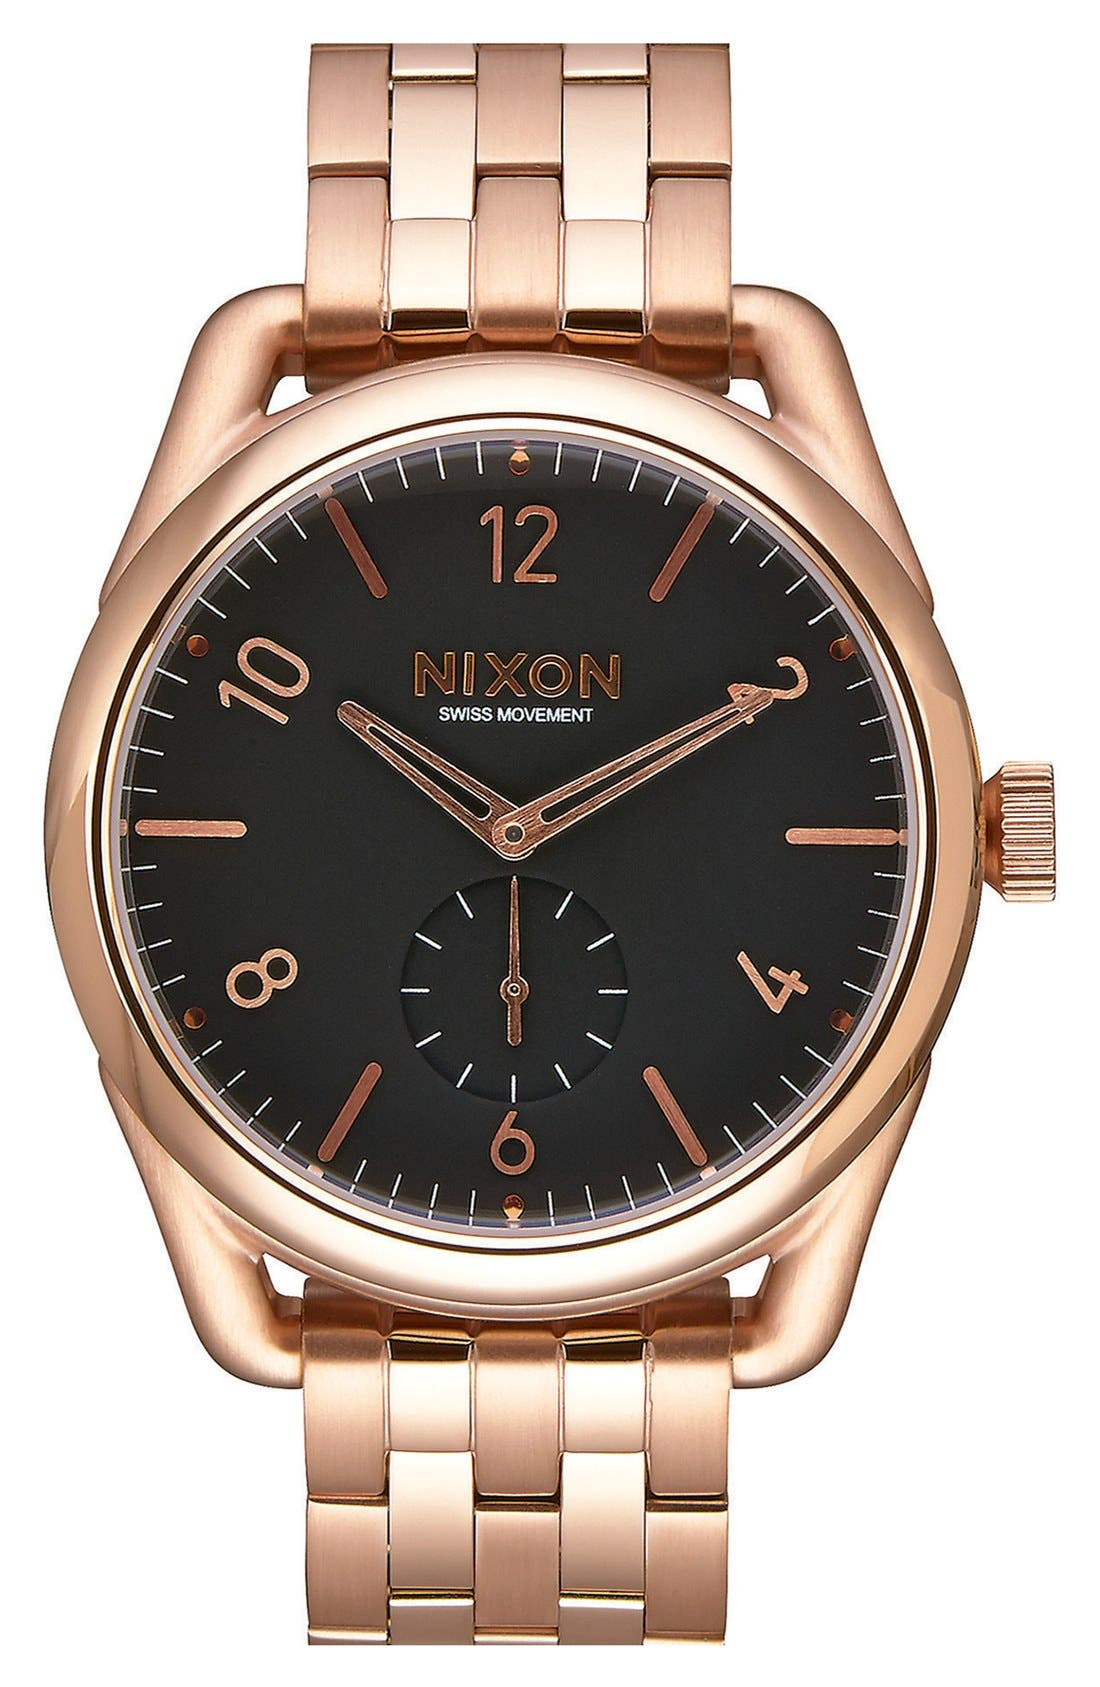 NIXON C39 Bracelet Watch, 39mm